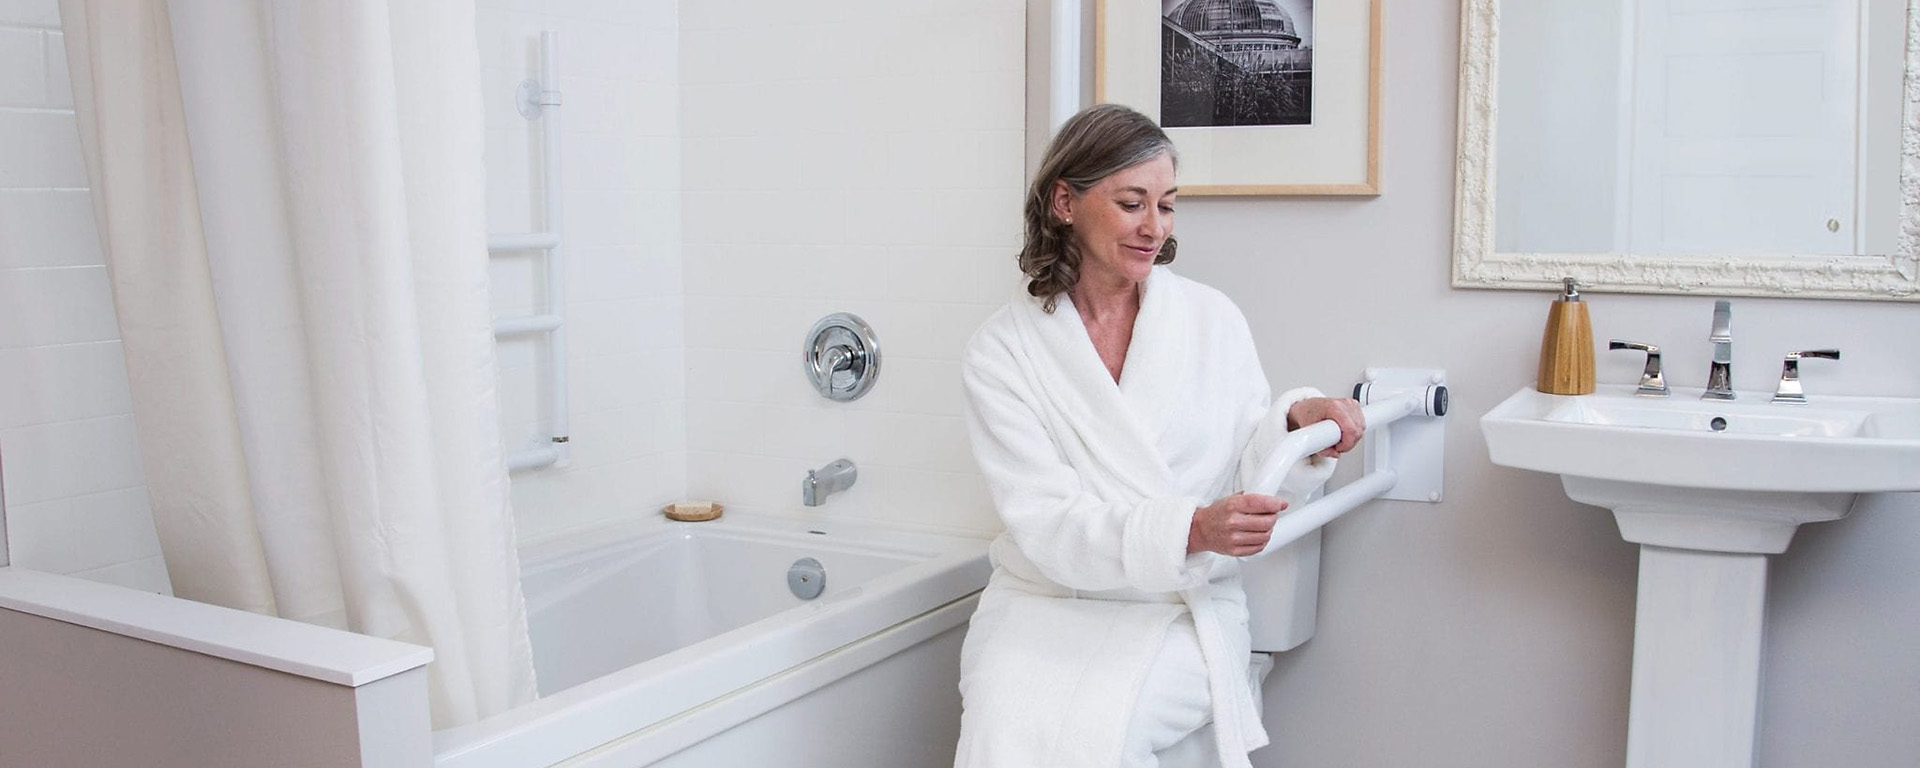 Elderly woman using bathroom safety products